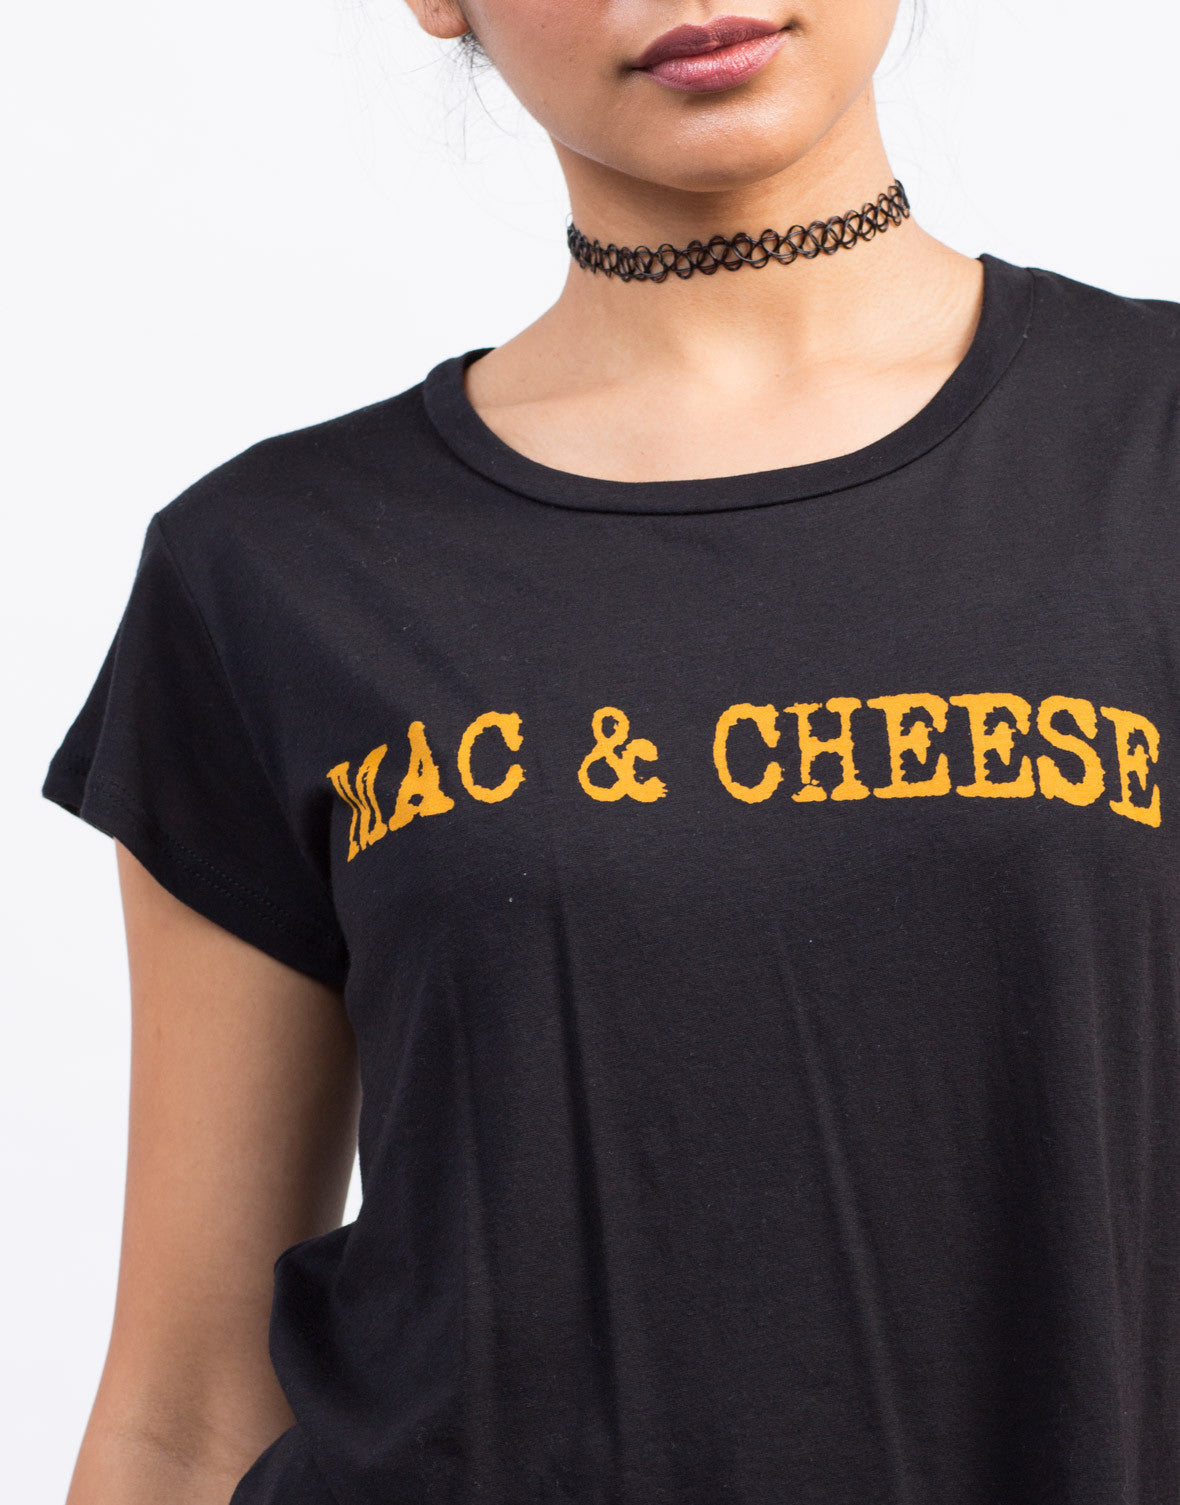 Detail of Mac & Cheese Graphic Tee